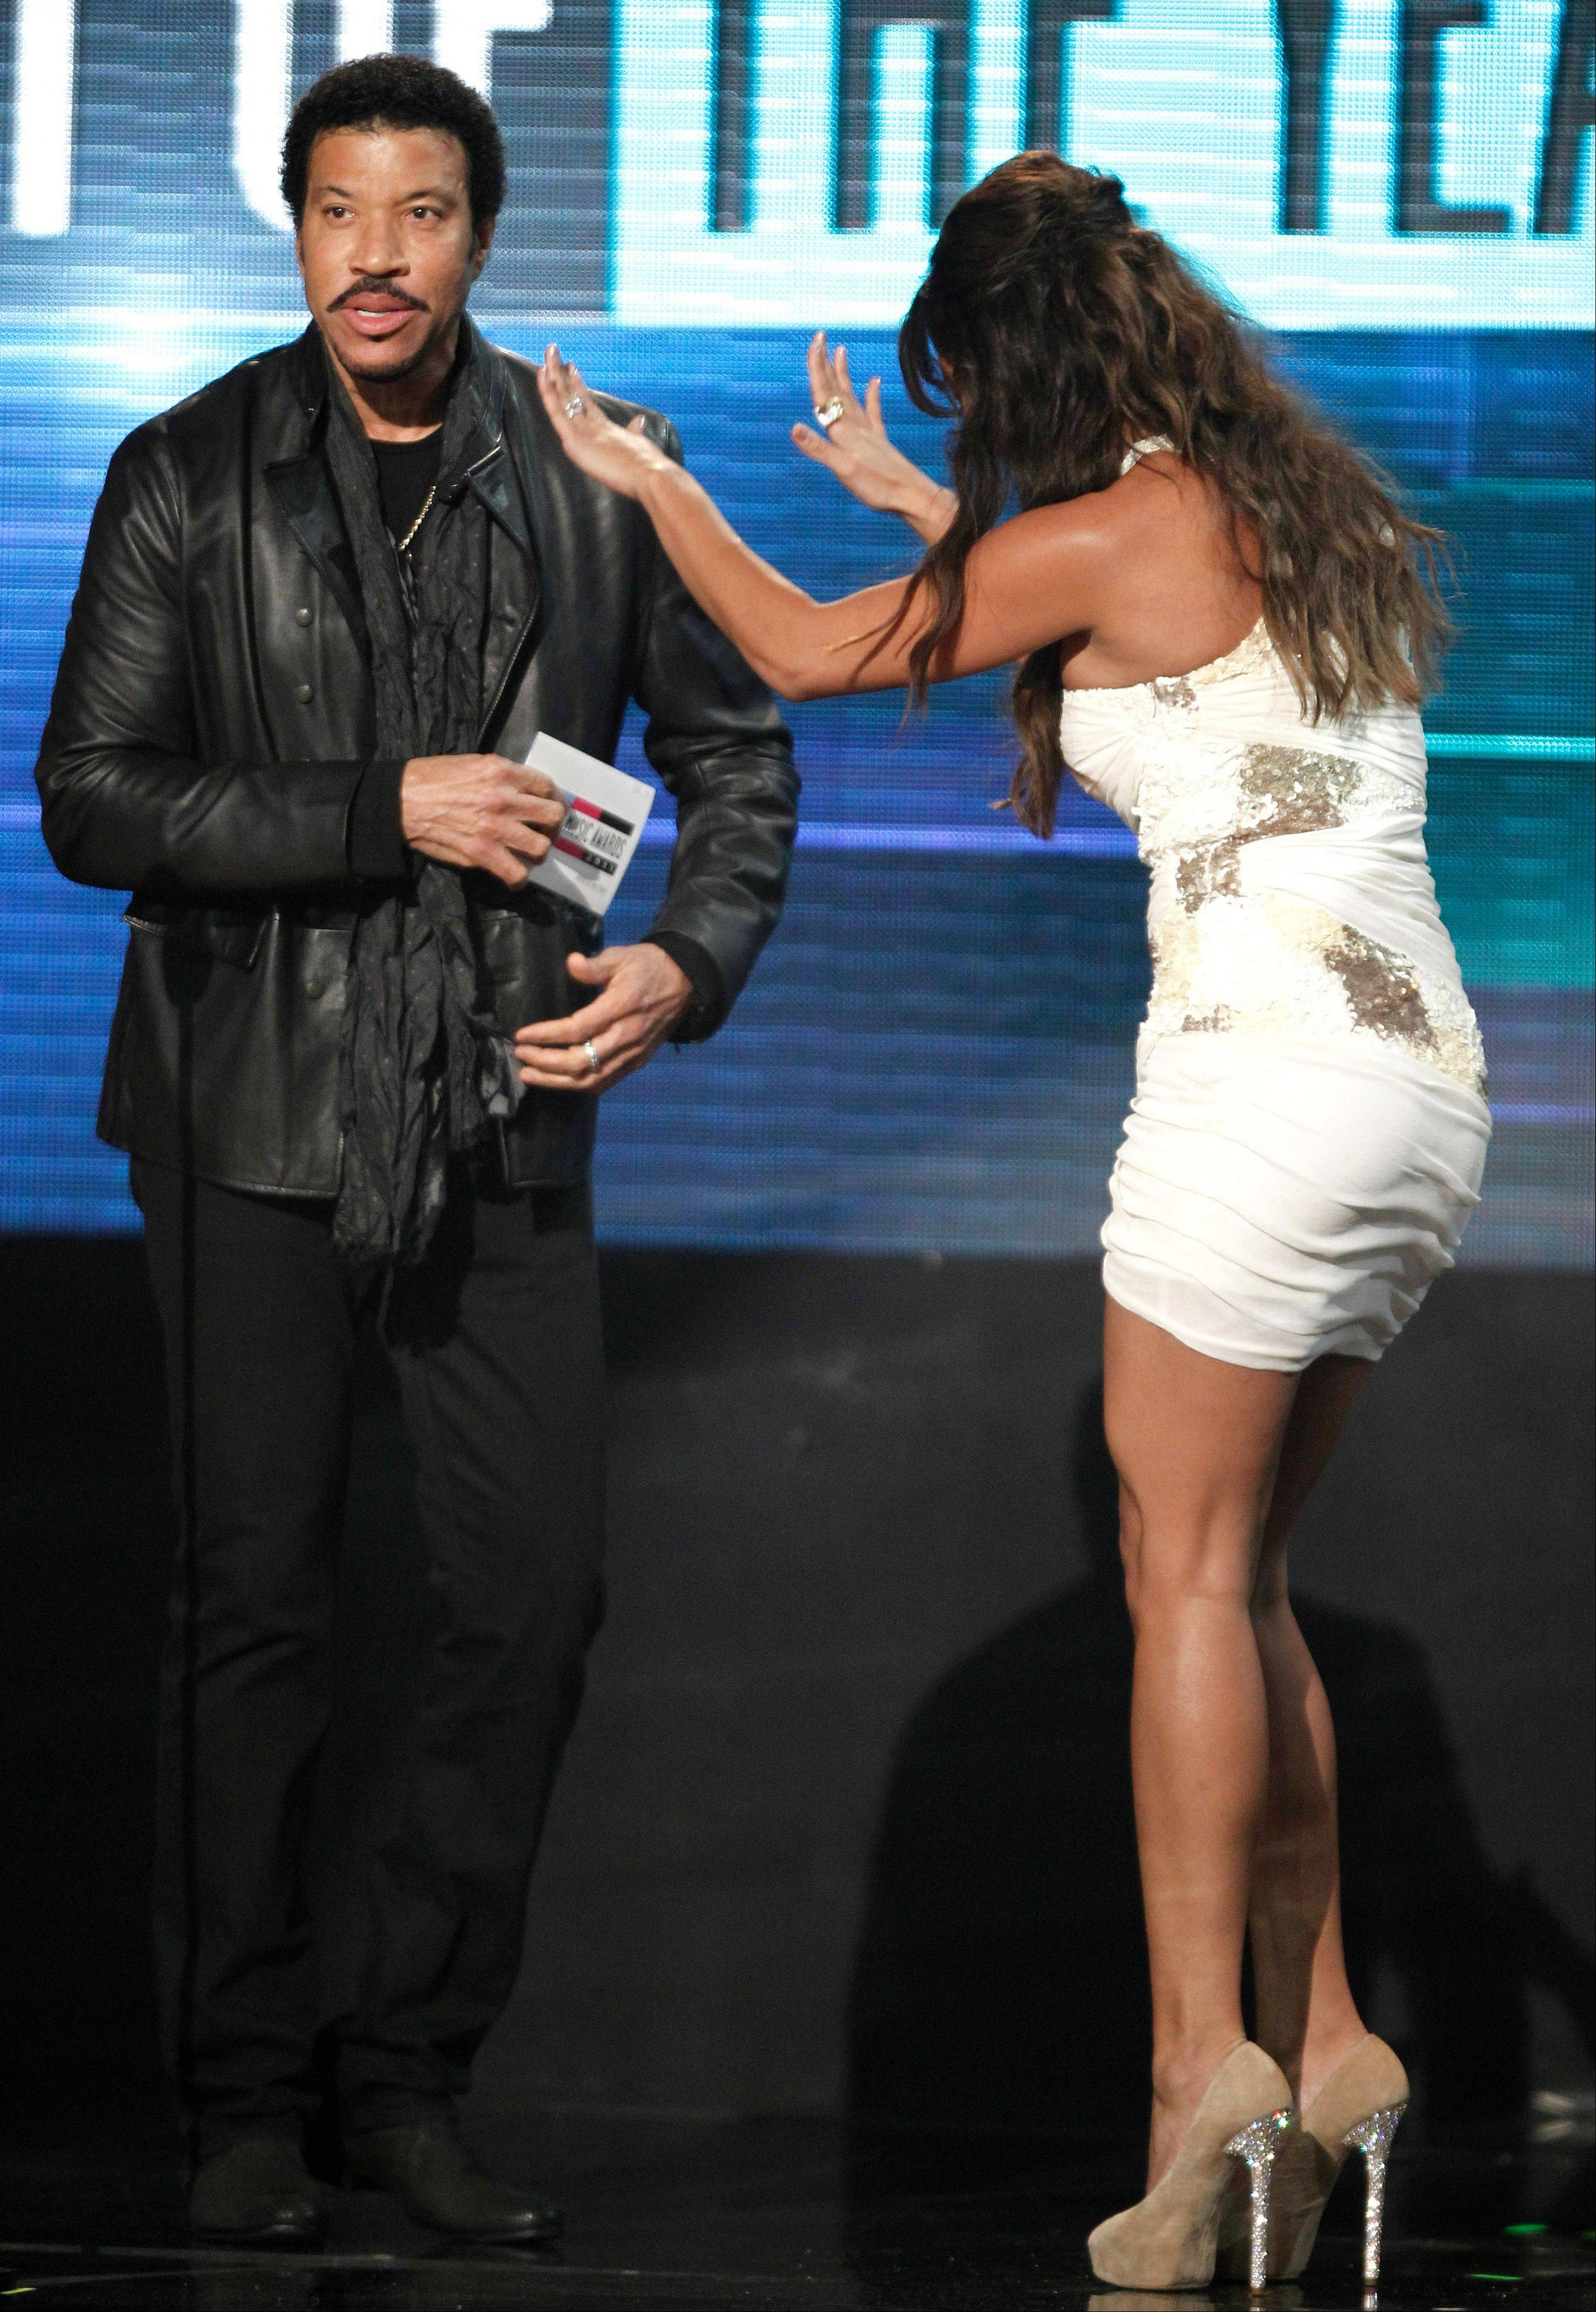 Lionel Richie, left, and Vanessa Minnillo present the award for artist of the year at the 39th Annual American Music Awards on Sunday, Nov. 20, 2011 in Los Angeles.